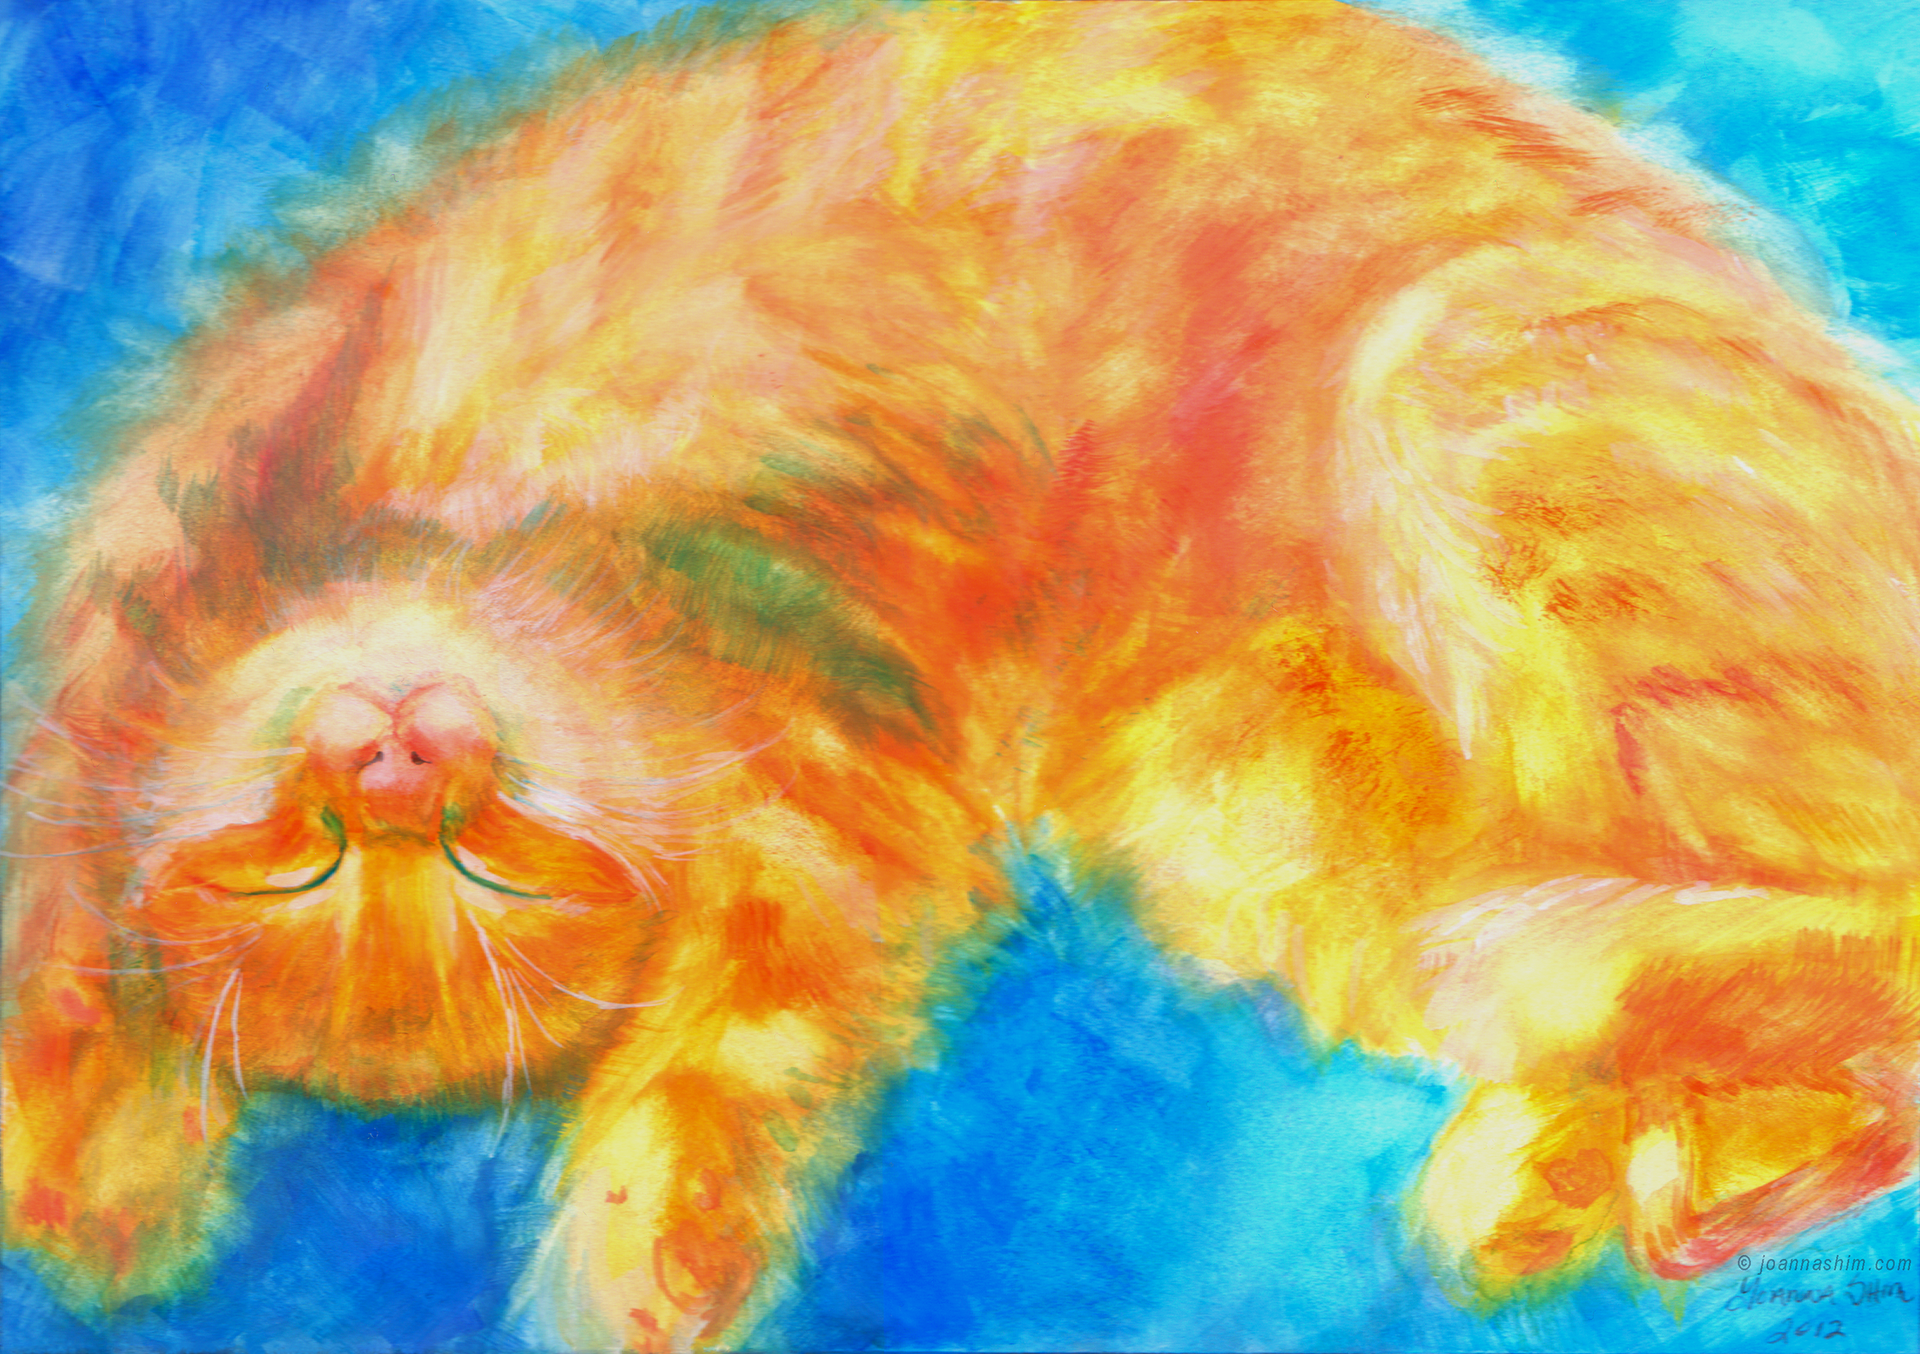 Watercolor painting. I saw this adorable cat online and had to paint it right away!